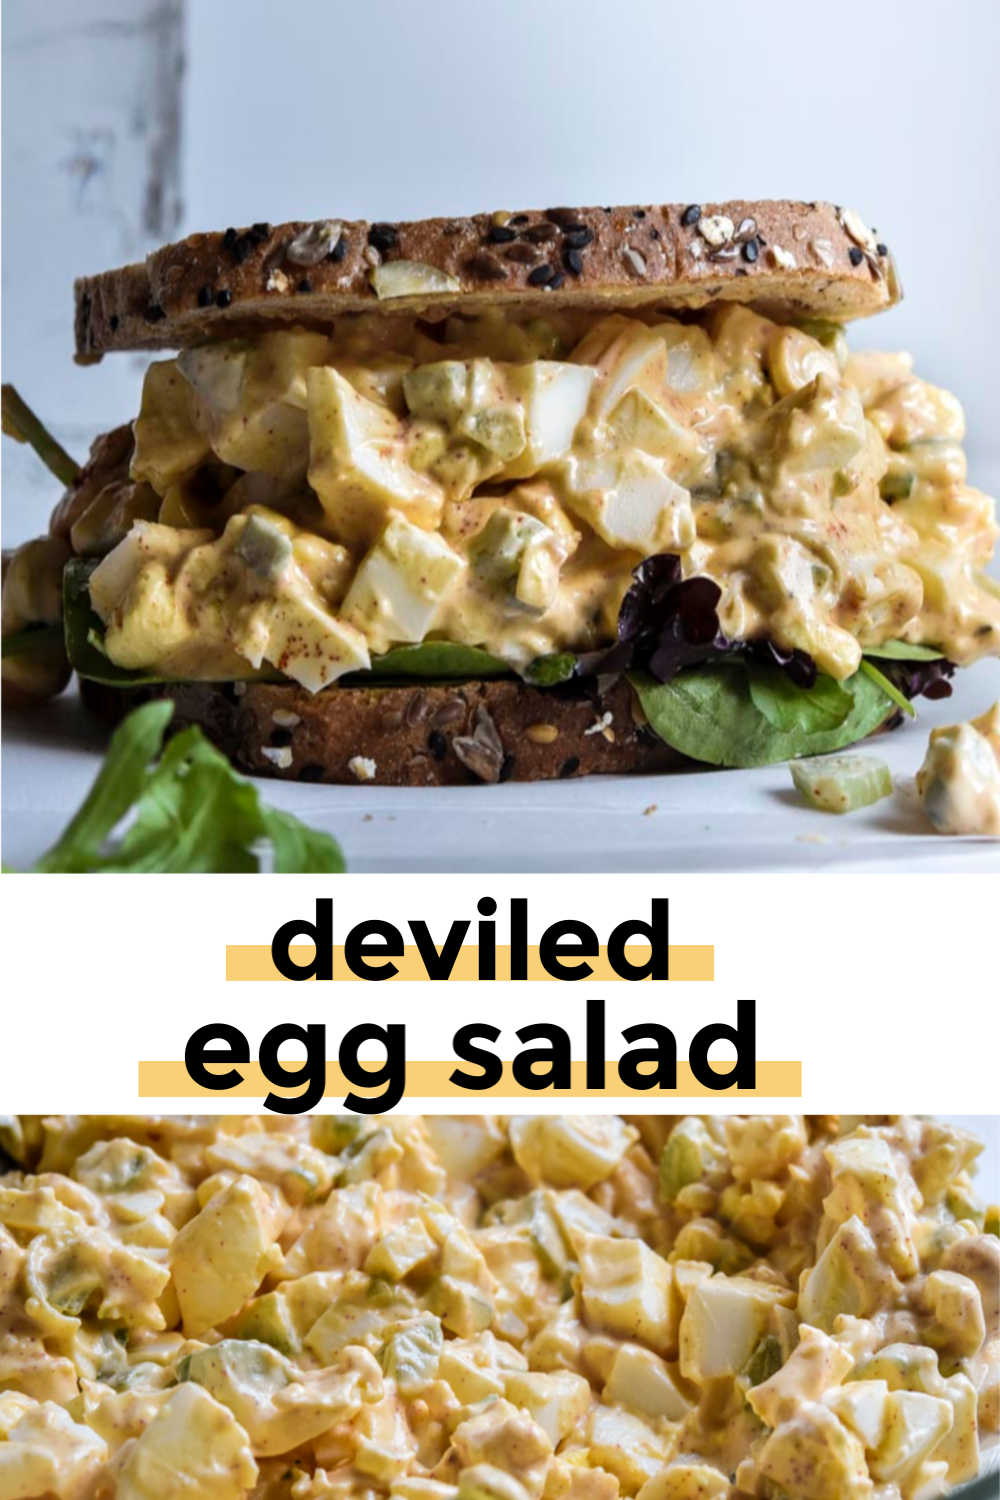 *NEW* When I'm looking for something fast, delicious and that fits my macros, I reach for this deviled egg salad recipe that's packed with flavor, protein, and healthy fat. #deviledeggsalad #lowcarbdeviledeggsalad